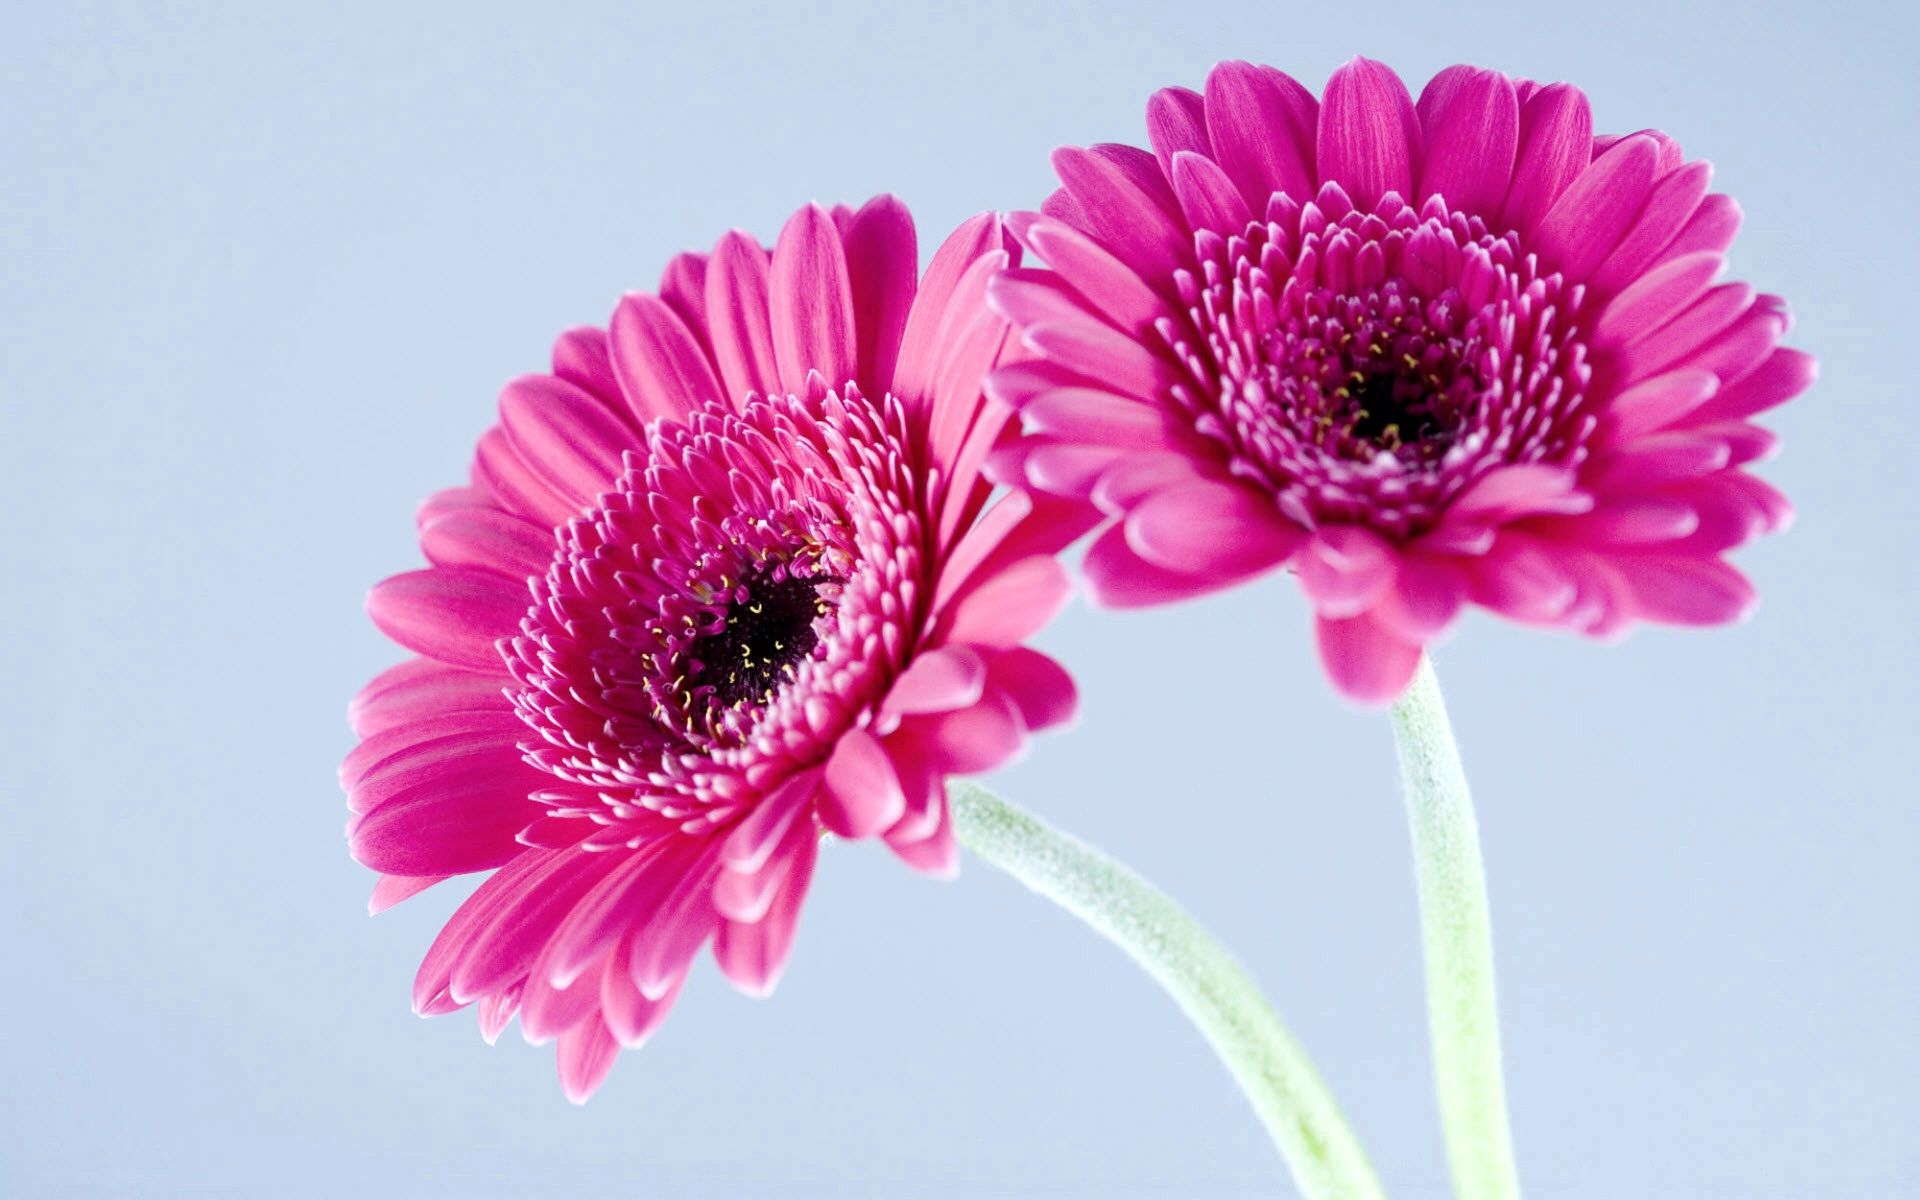 Purplegerberadaisies wideg 19201200 crazy for daisies gerberas available all year round in a vast variety of colours dhlflorist Image collections